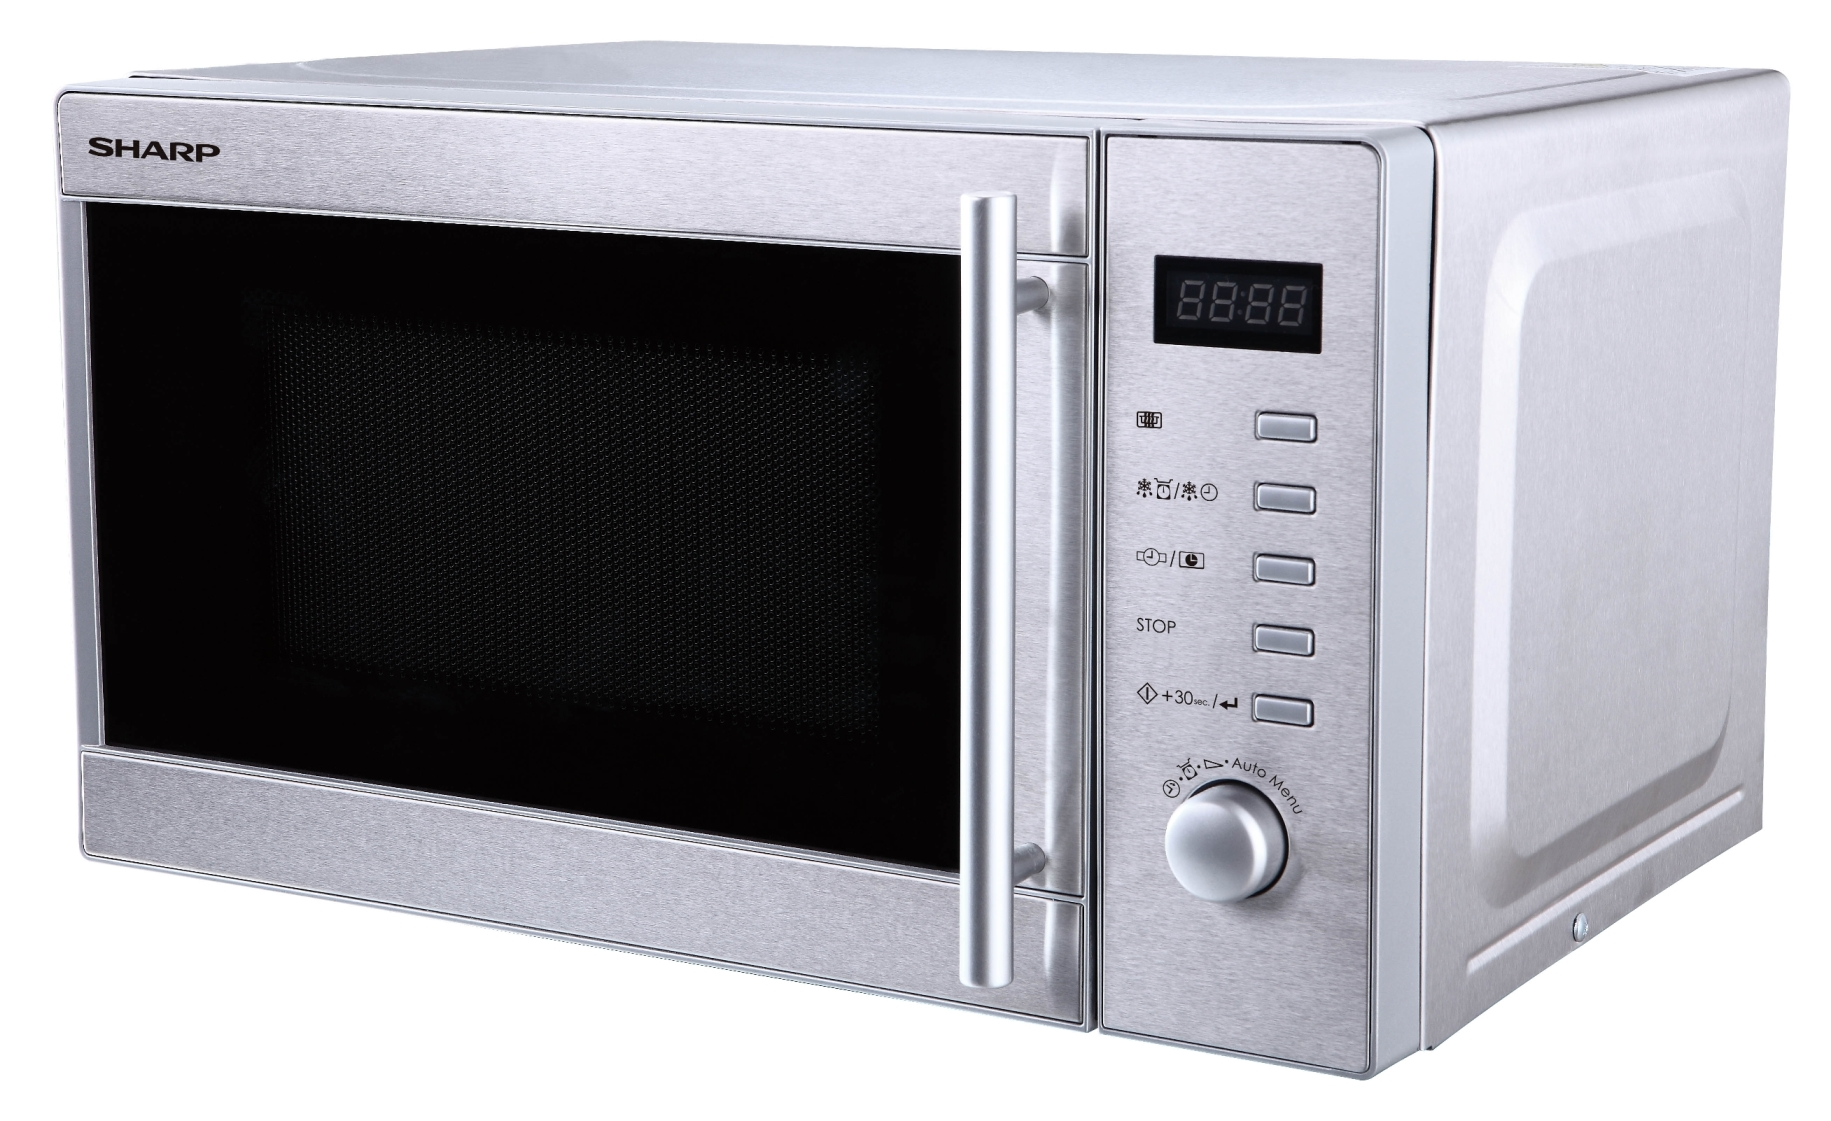 sharp_microwave_2